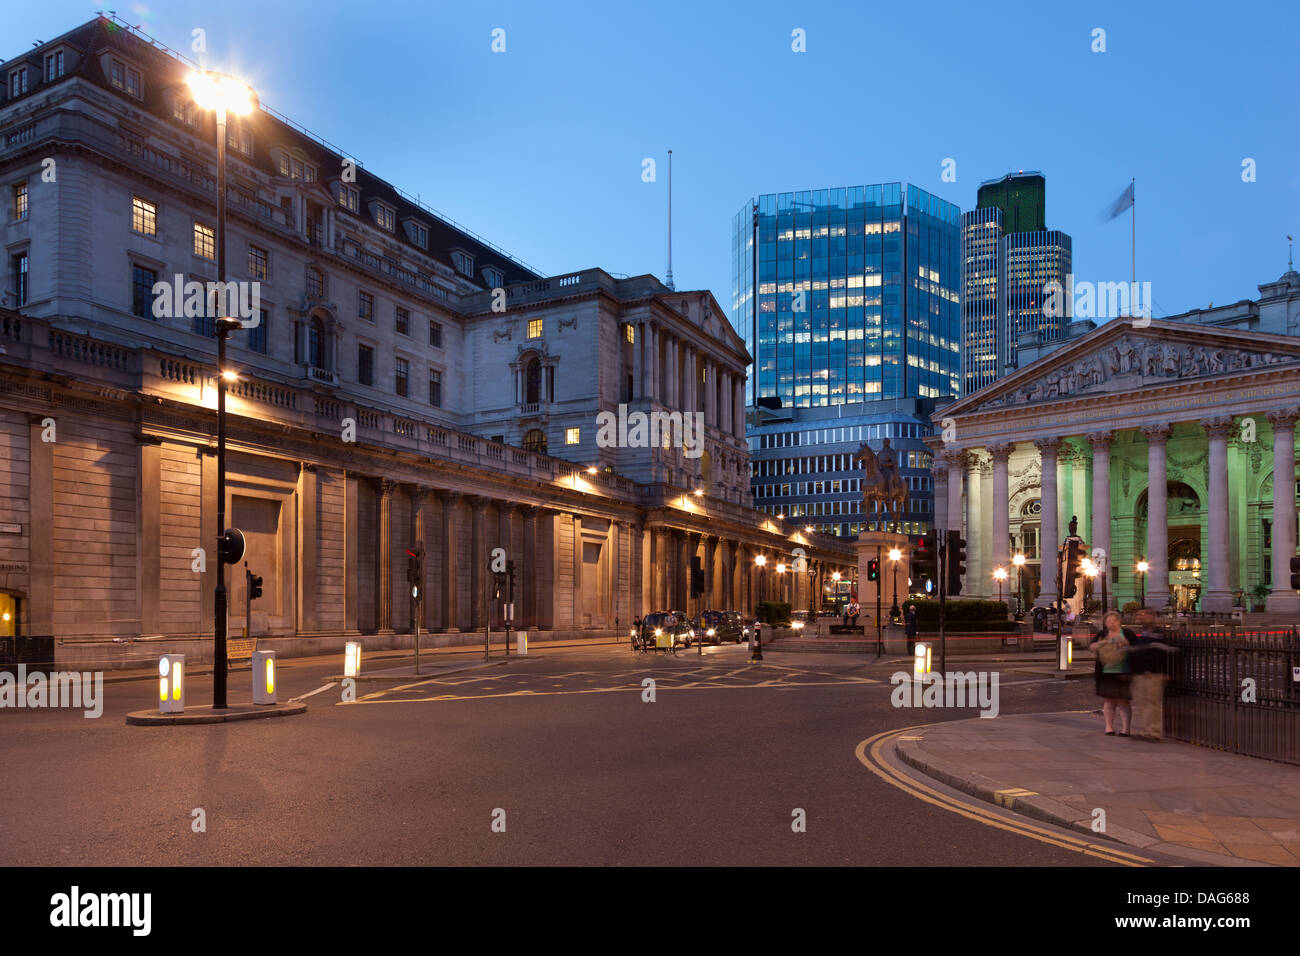 The Bank of England,The Royal Exchange and Tower 42 at night,Bank Junction,The city of London,England - Stock Image